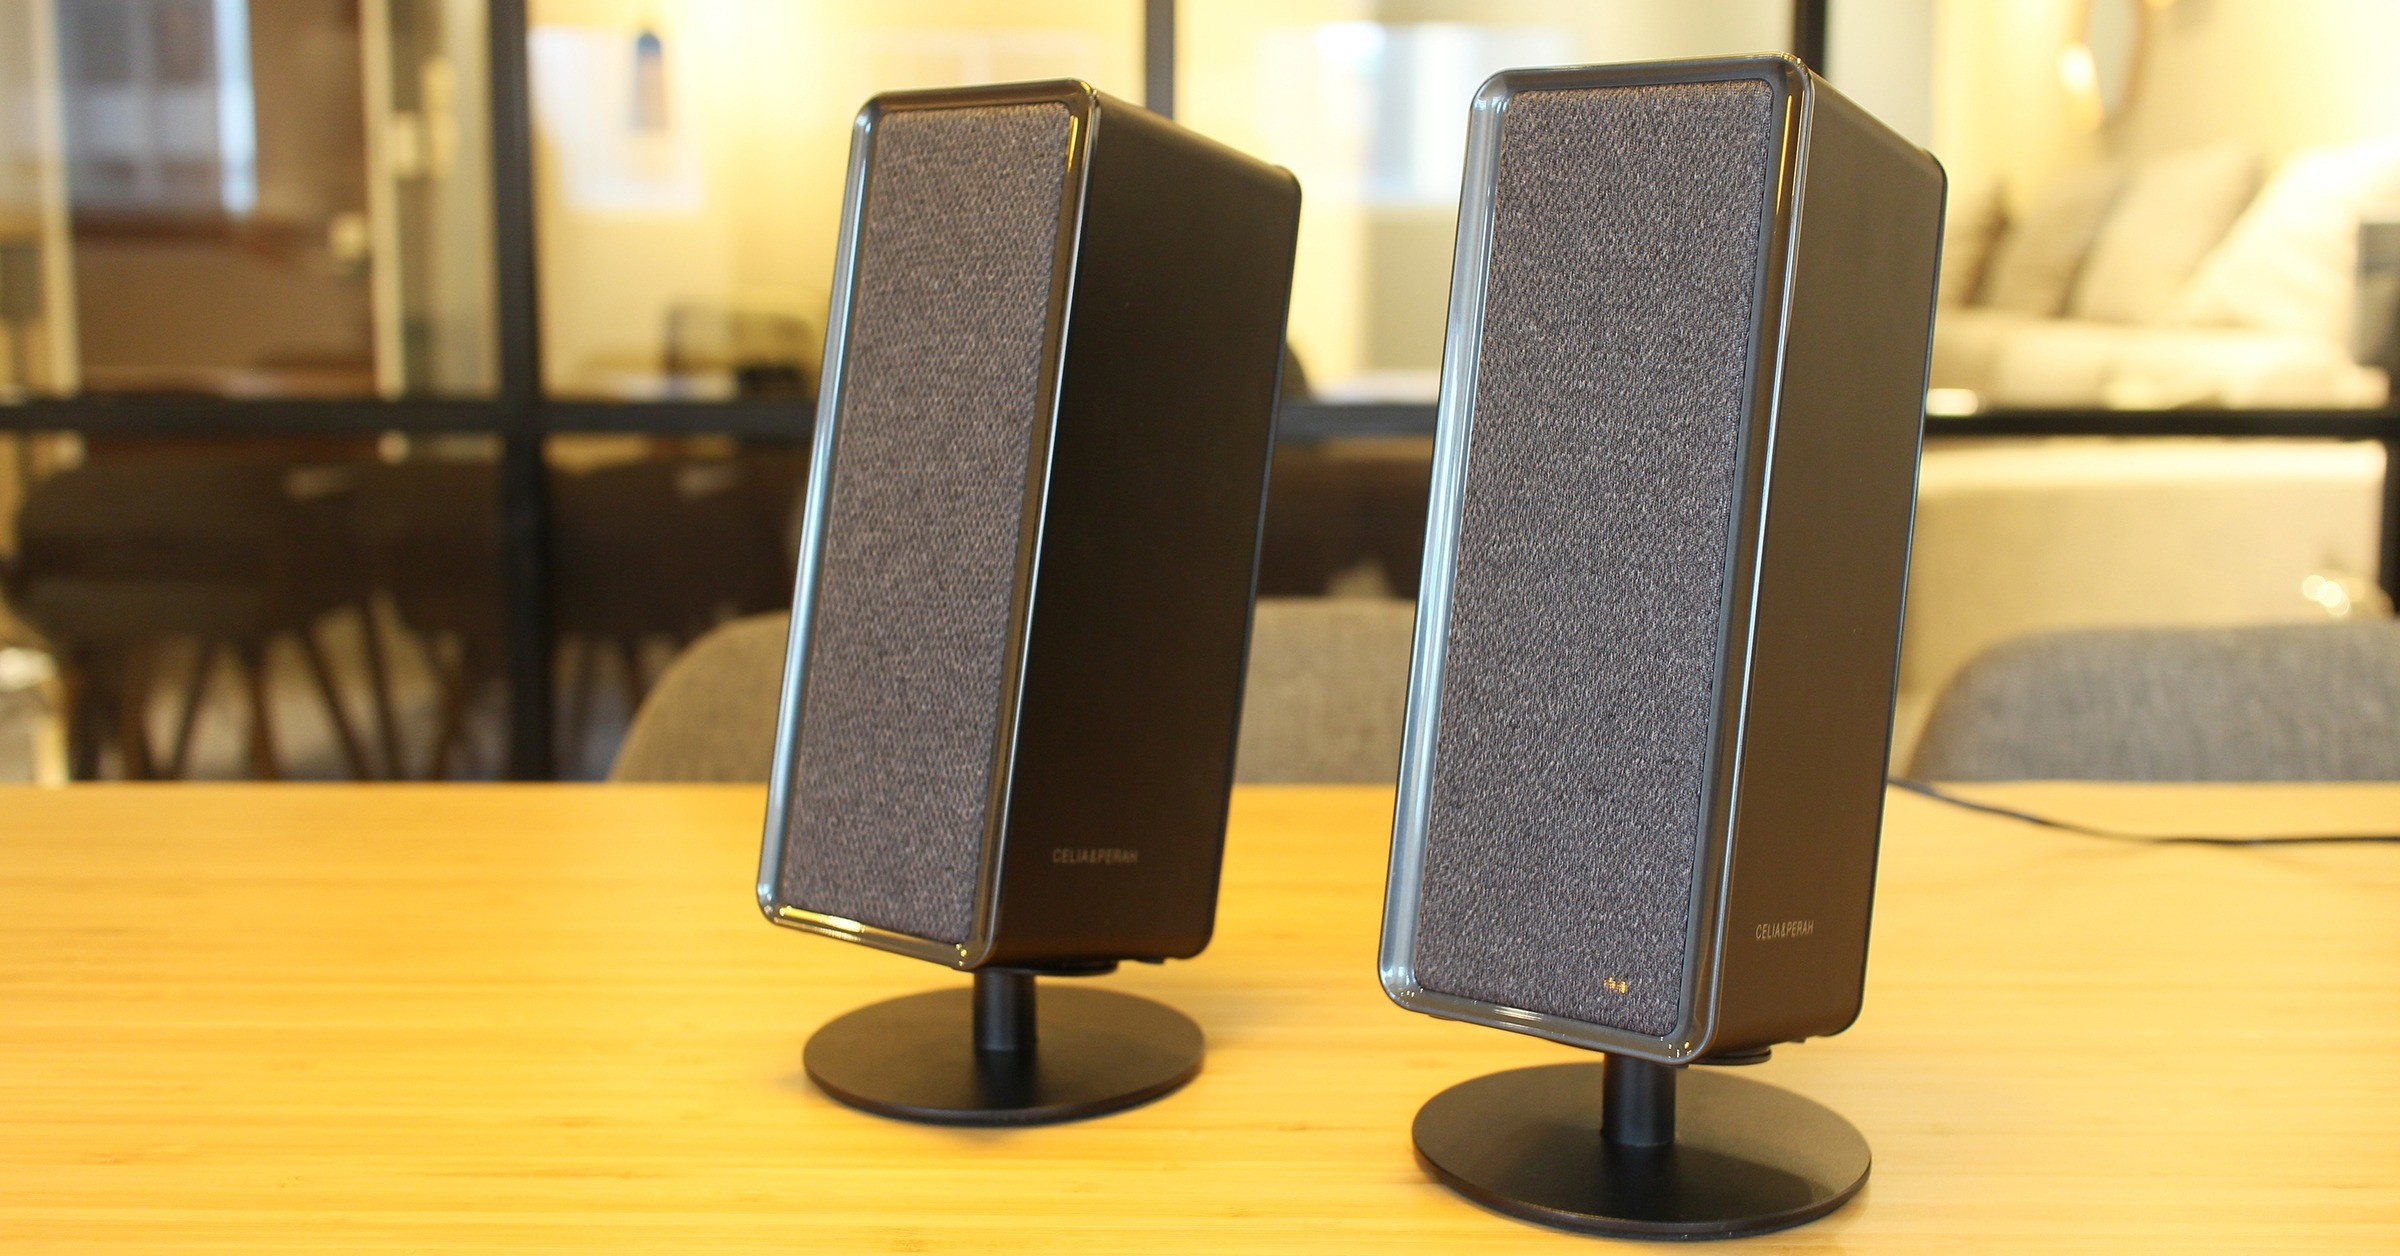 Computer speakers, Sound, Product design, Product, Multimedia, Loudspeaker, Design, computer speaker, loudspeaker, computer speaker, audio equipment, audio, product, sound, product design, speaker, technology, electronic device